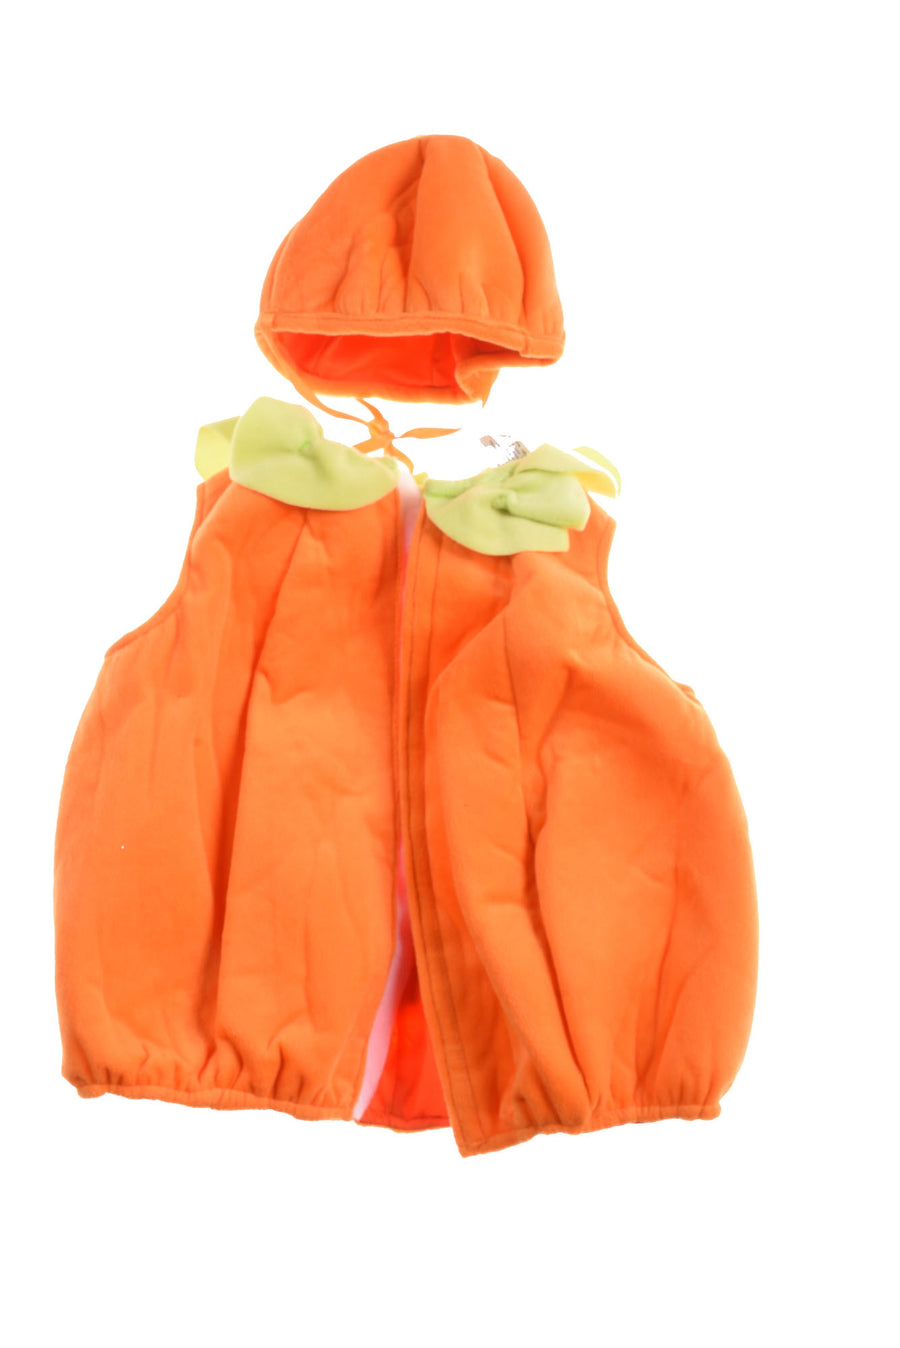 Baby Pumpkin Halloween Costume By Fun World